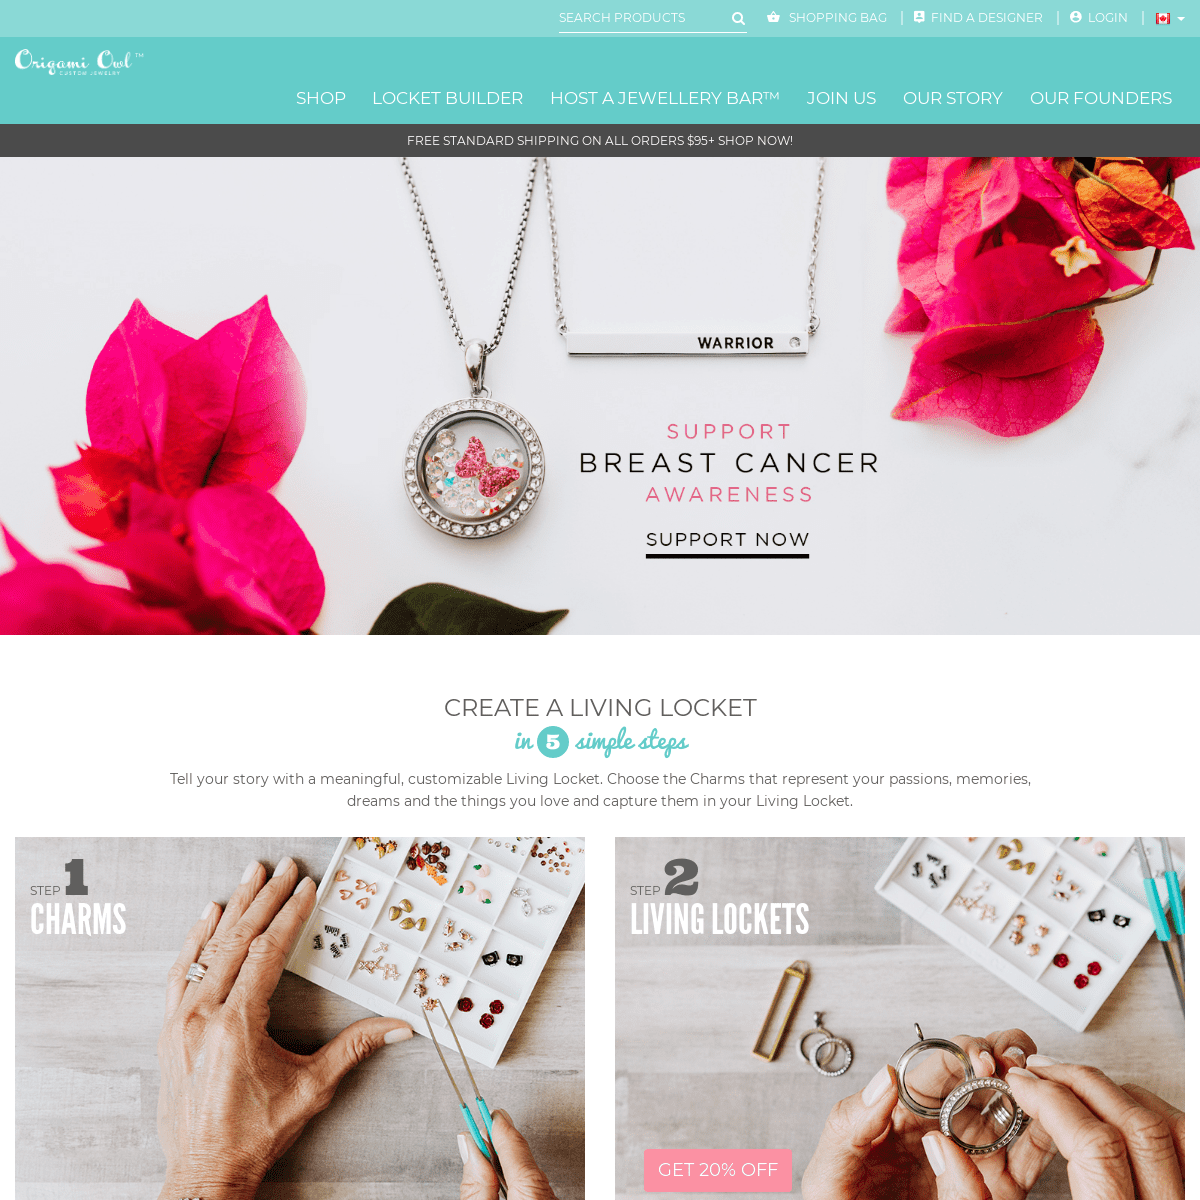 Is Origami Owl a Pyramid Scheme? [No, But Be Careful ... | 1200x1200